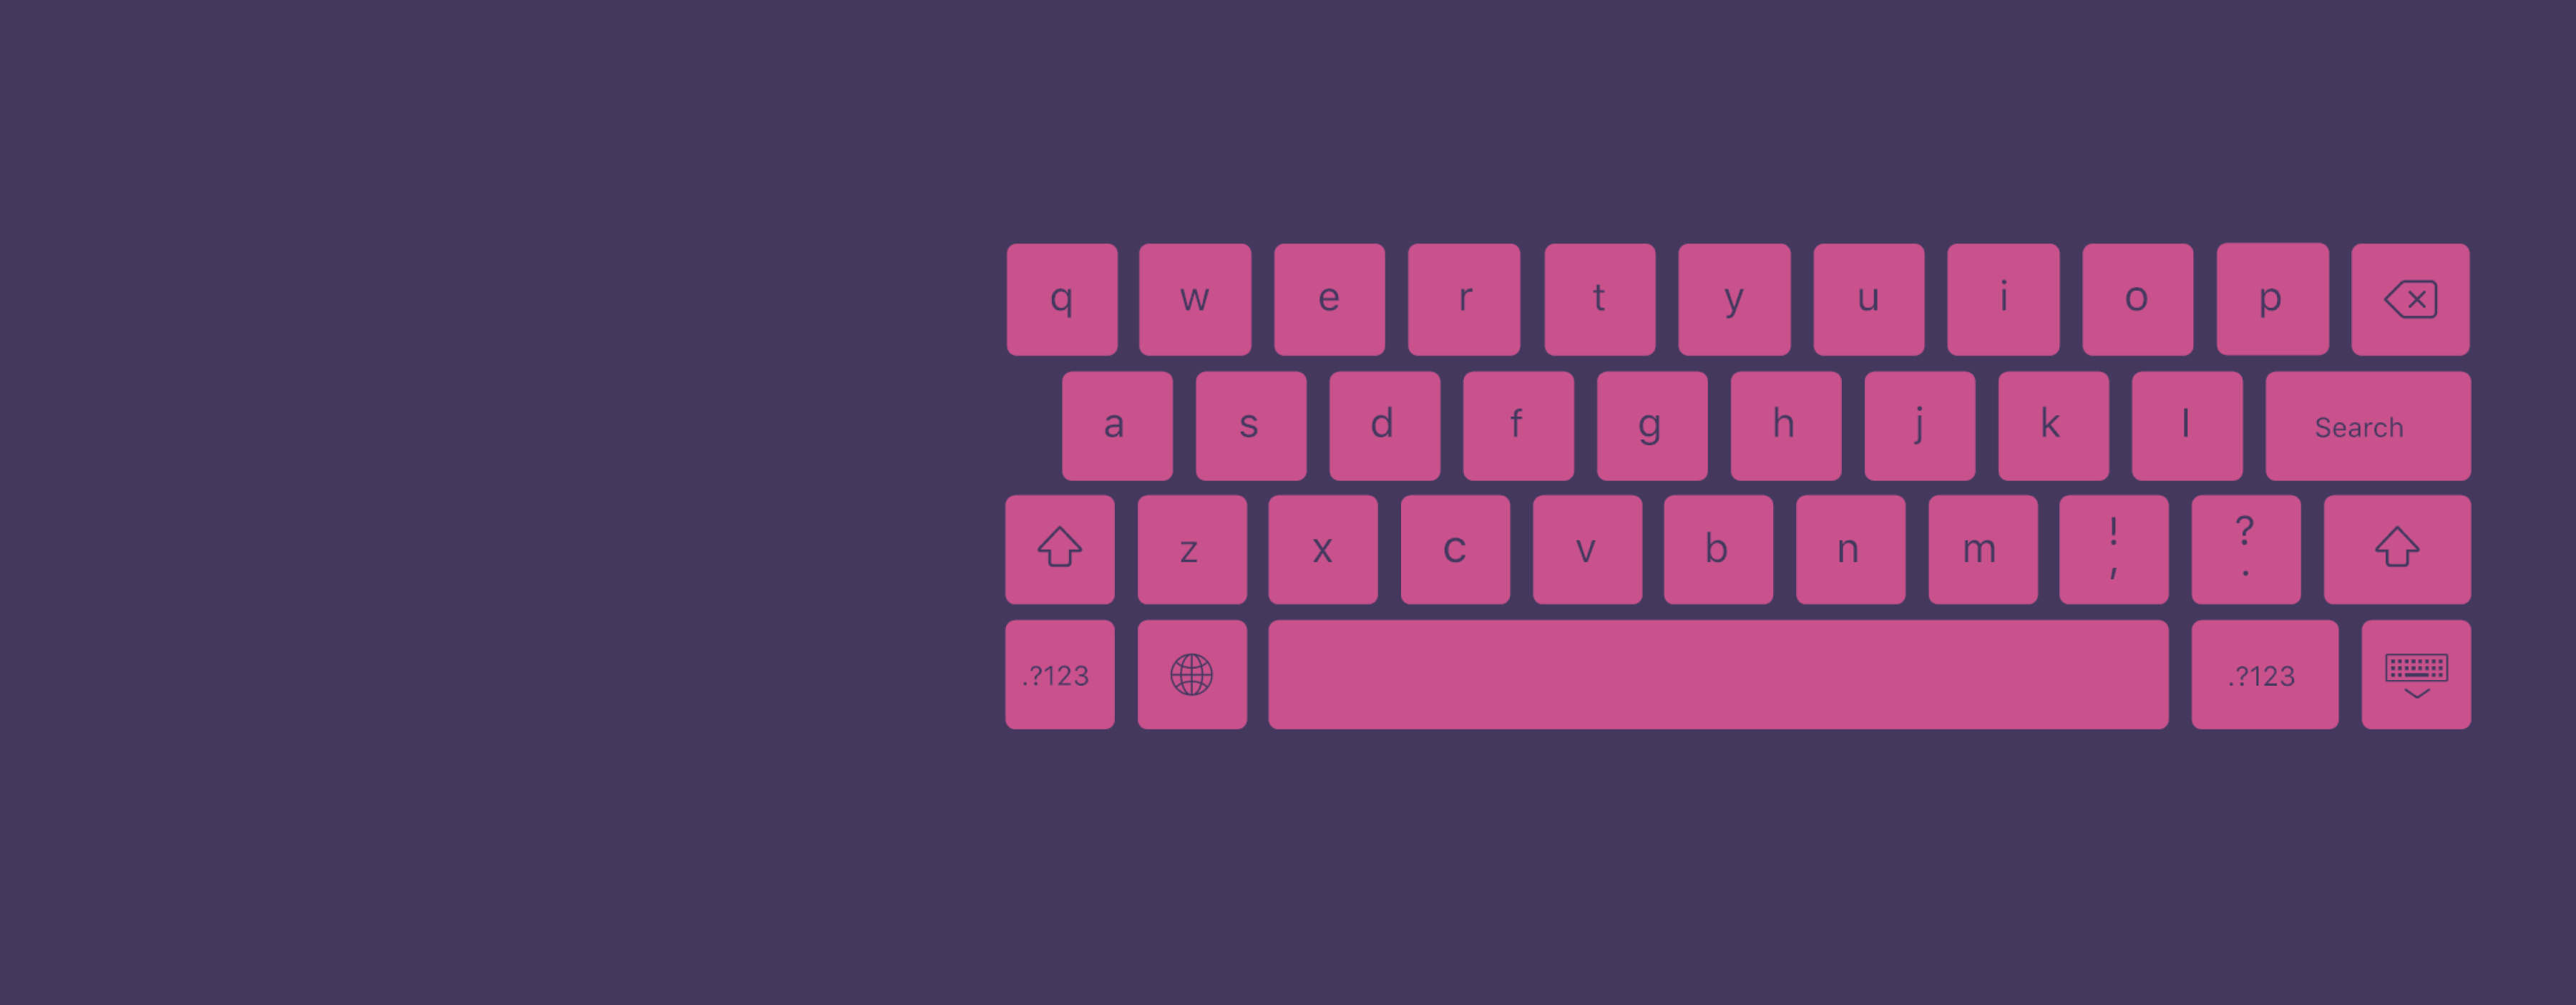 A graphic representation of a keyboard.